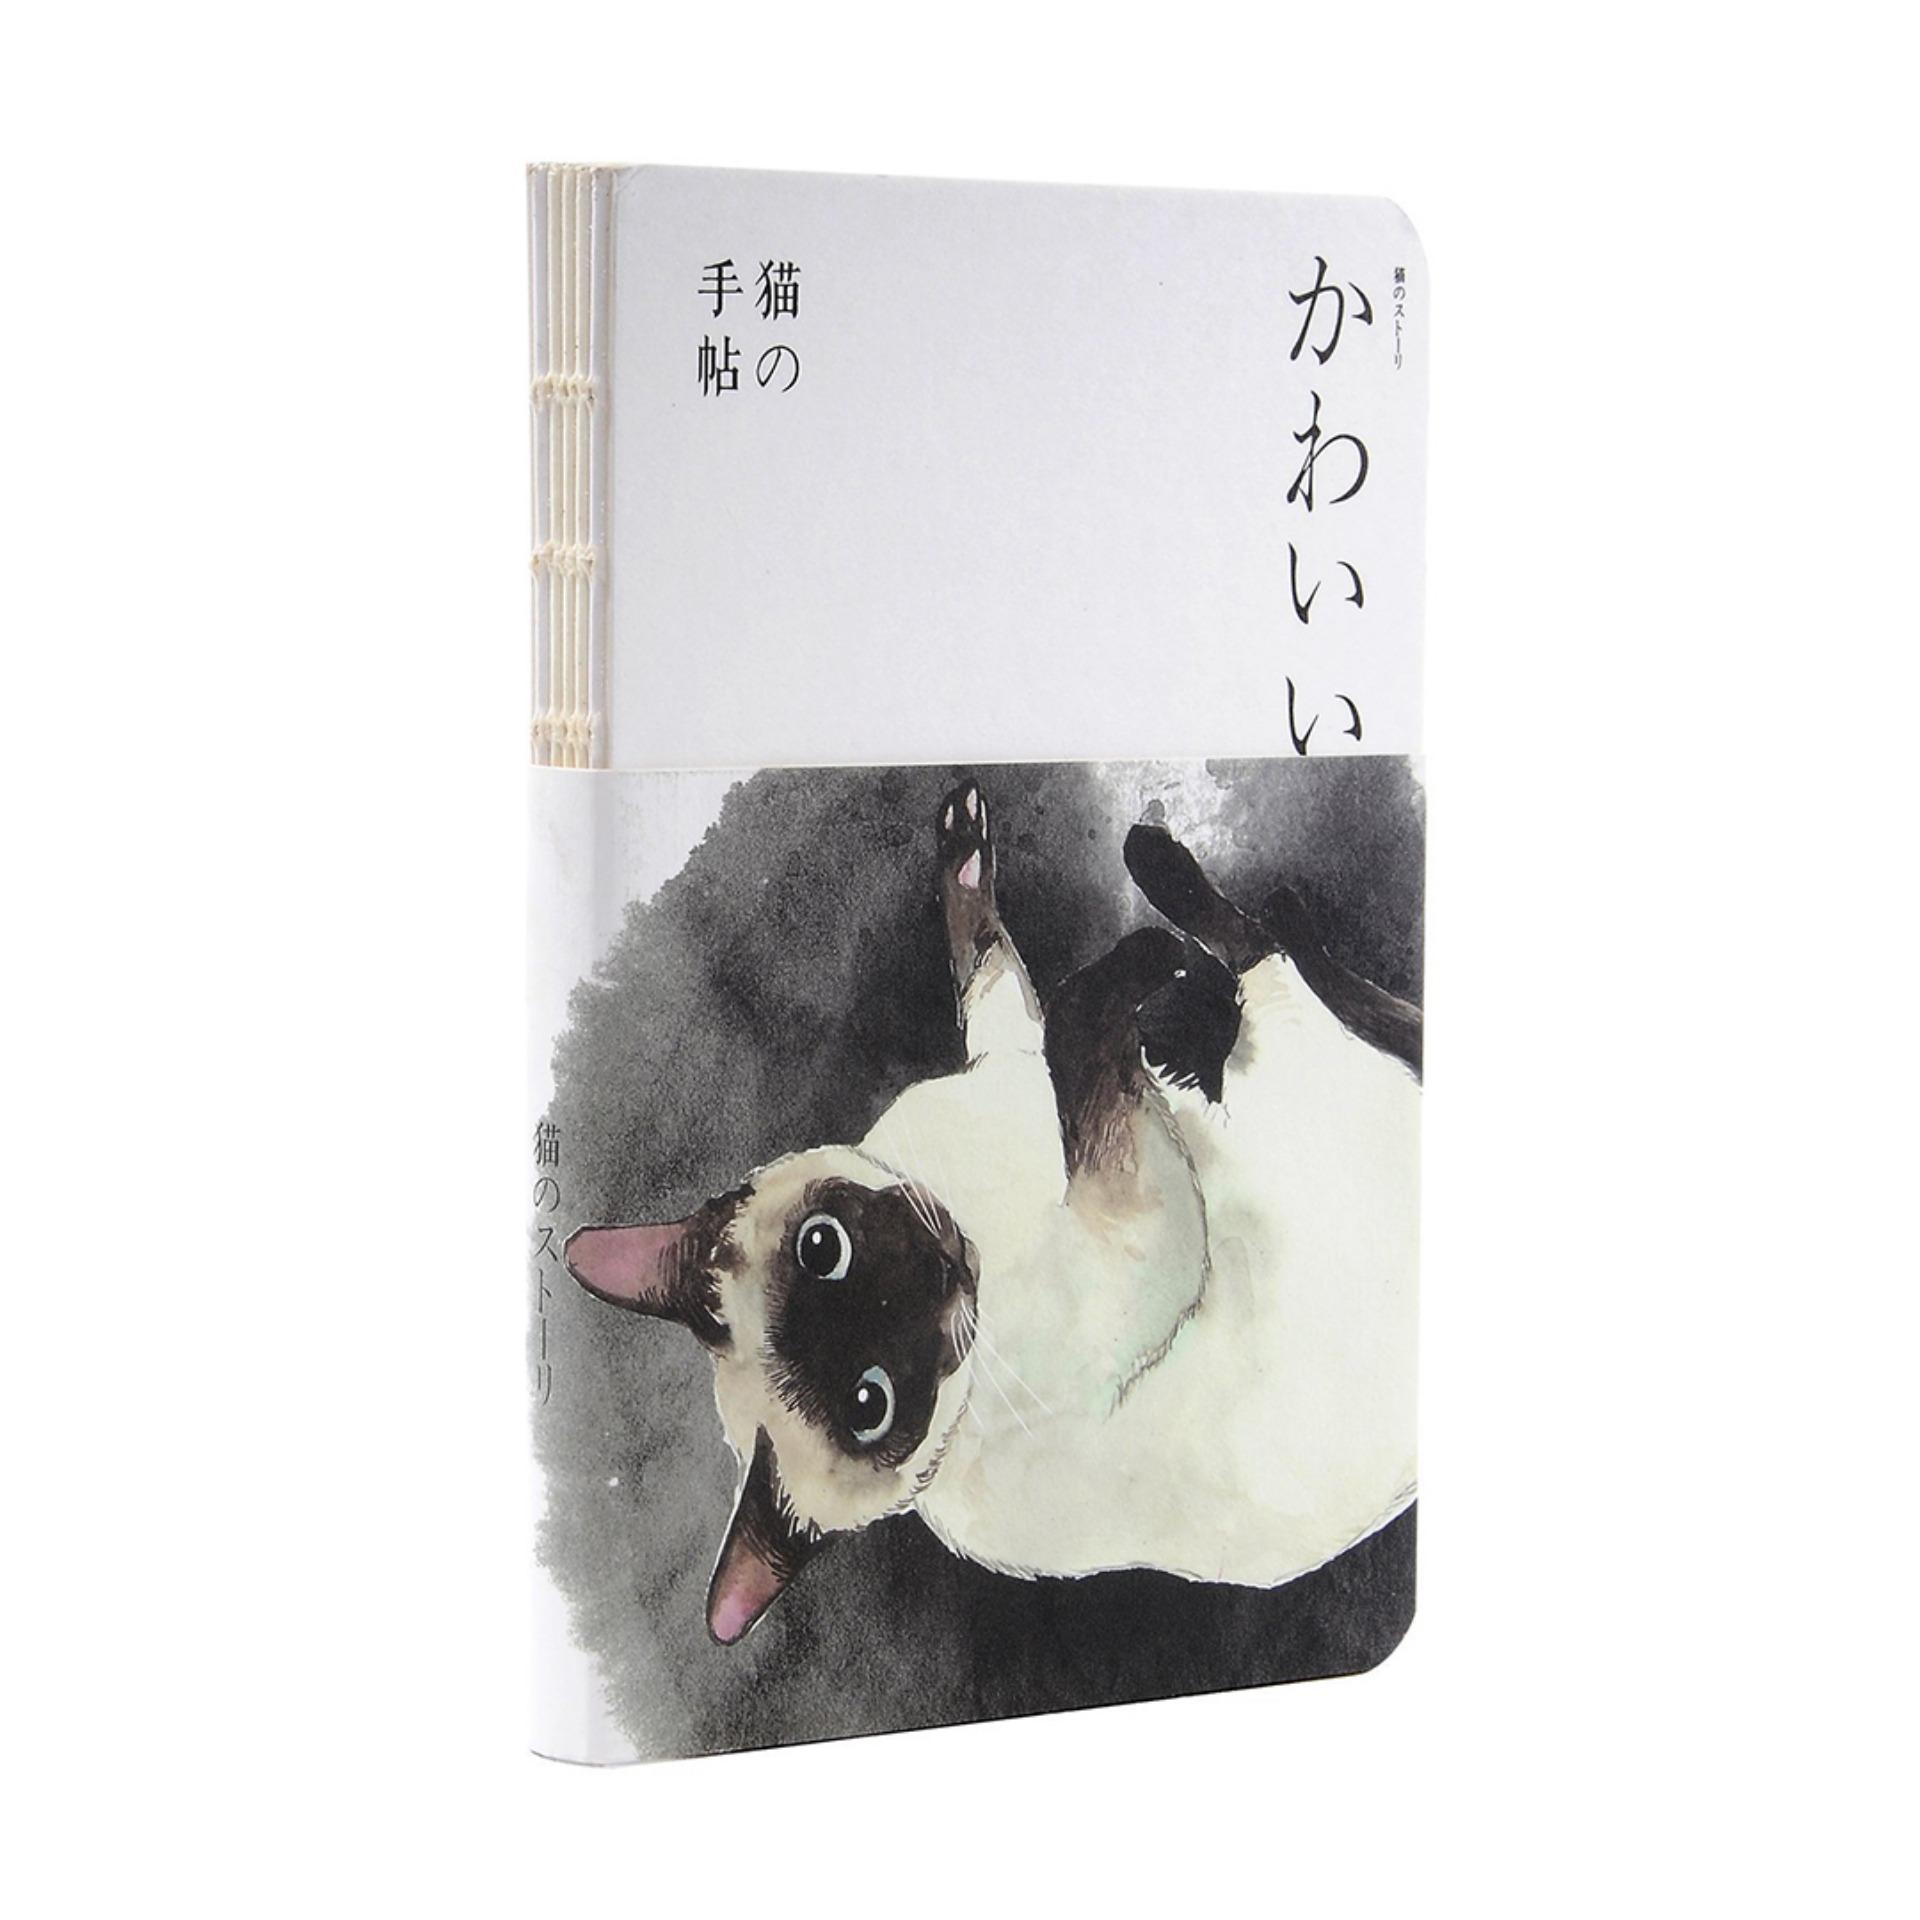 Uchii - Japanese Style Note Book - Painting Cover - B6